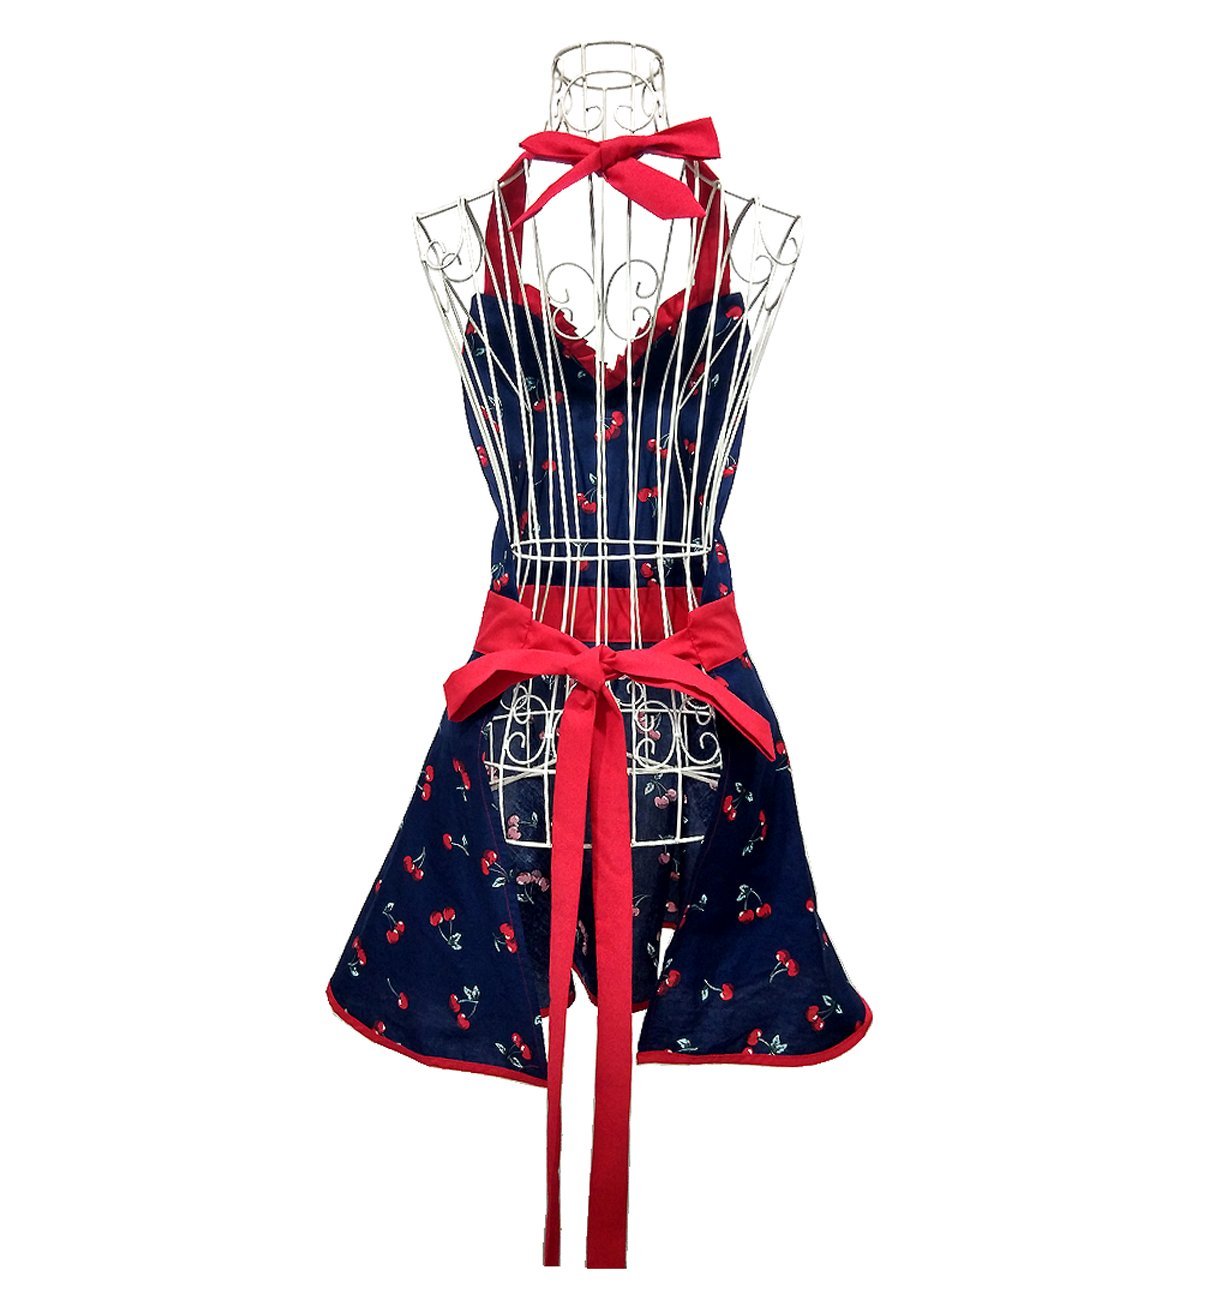 Hyzrz Cute Lovely Ladys Kitchen Fashion Blue Flirty Apron for Womens Girls with Pocket